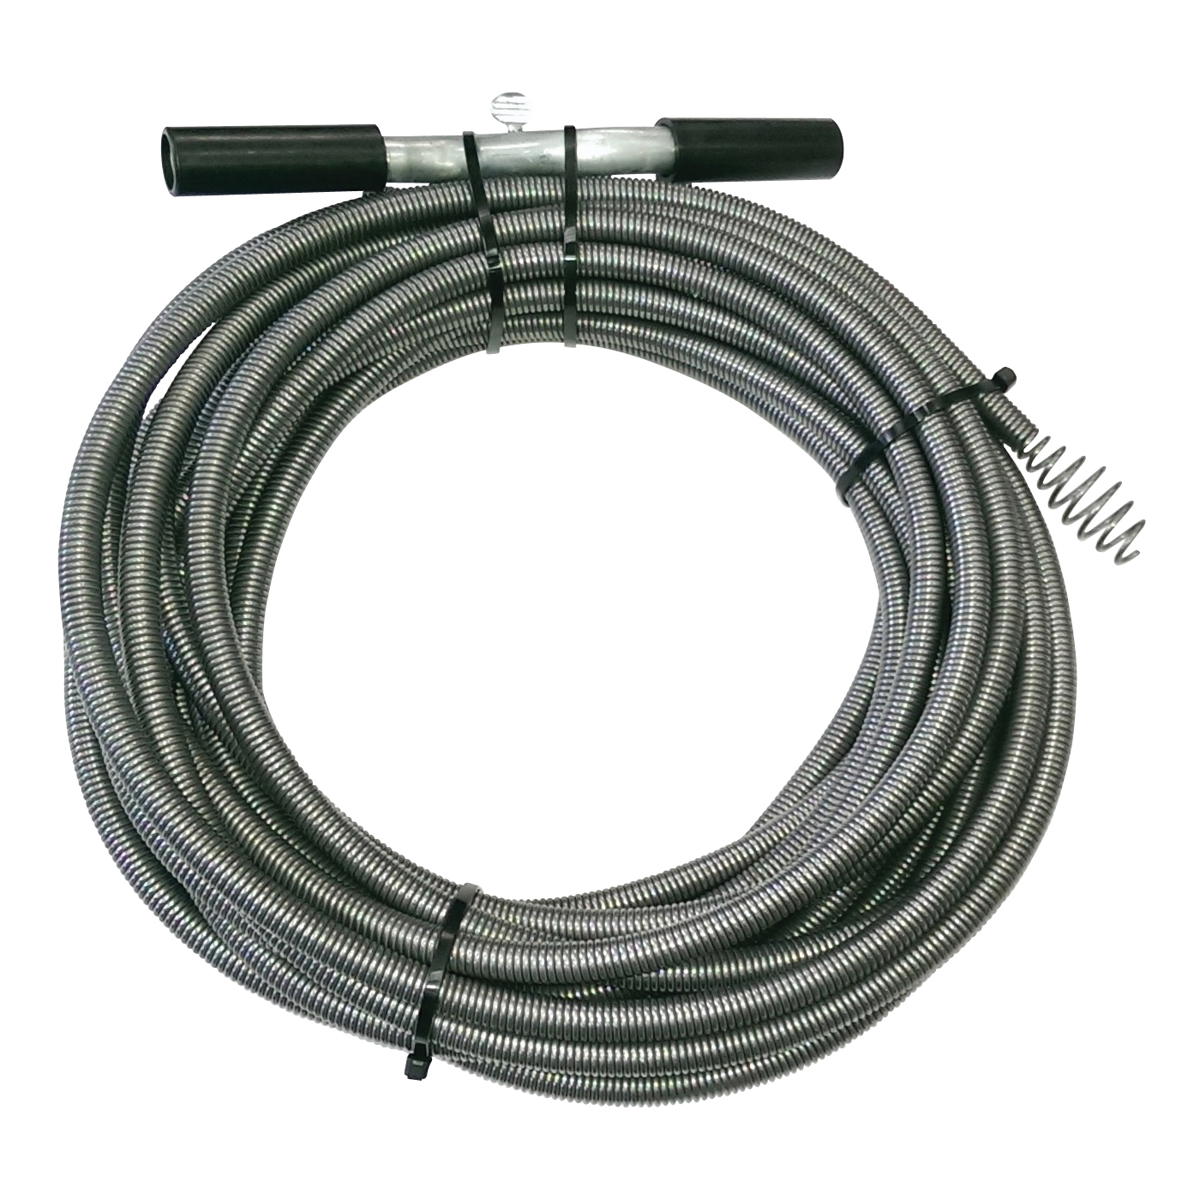 Picture of Prosource DC00003-50 Drain Auger, 3/8 in Dia Cable, 50 ft L Cable